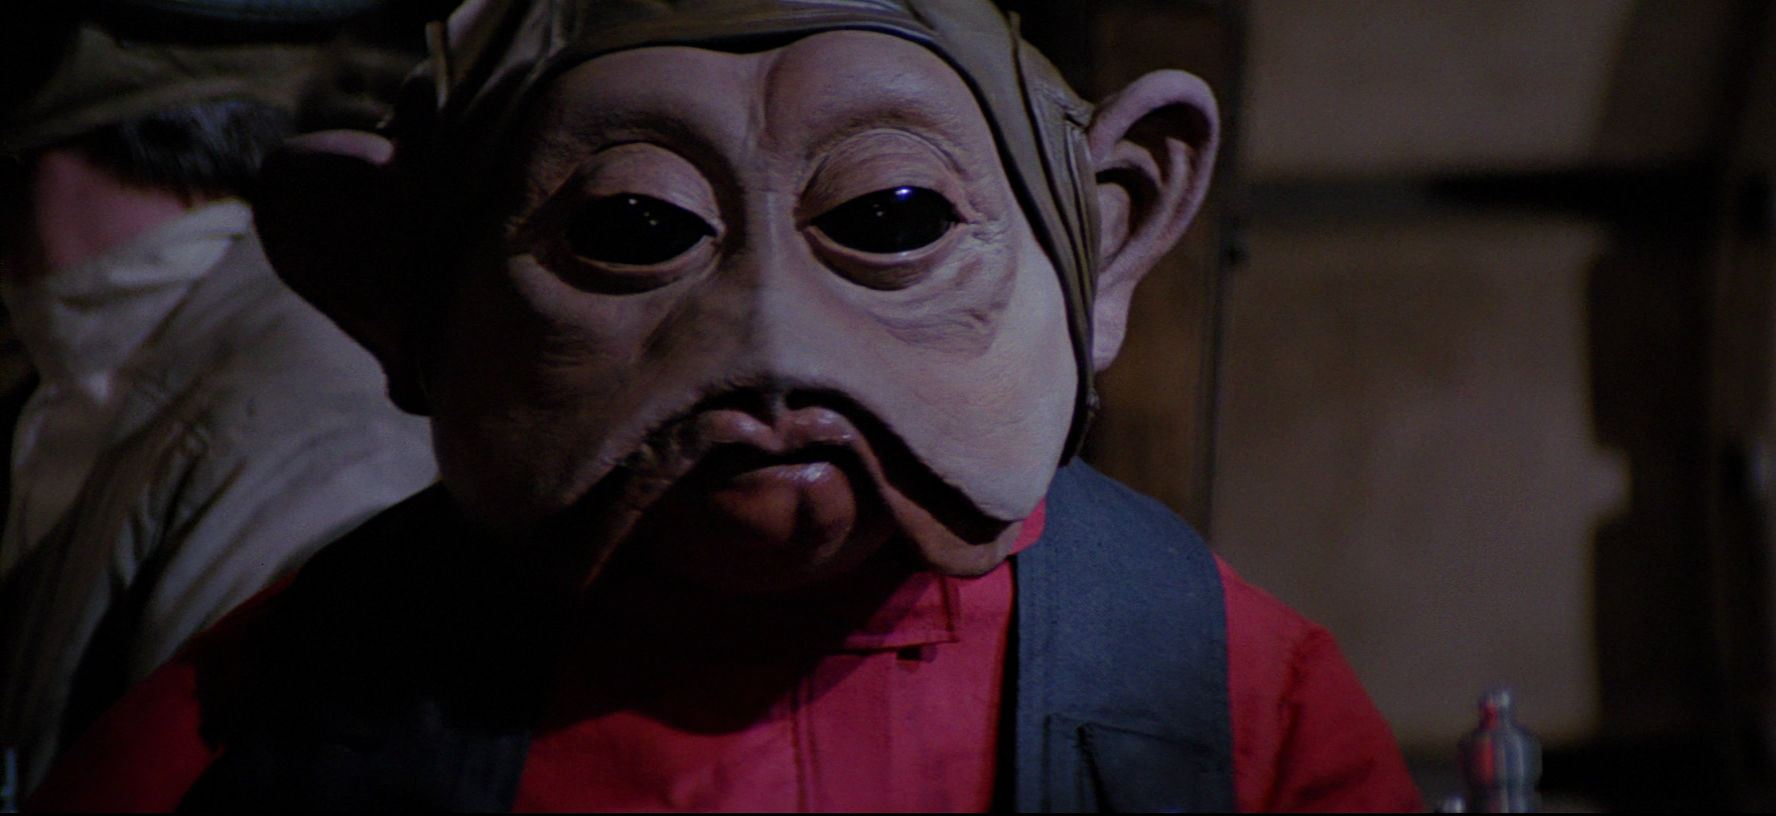 Star Wars Battlefront Sequel Confirmed, Will Tie In To New Movies Richard Bonehill Nien Nunb